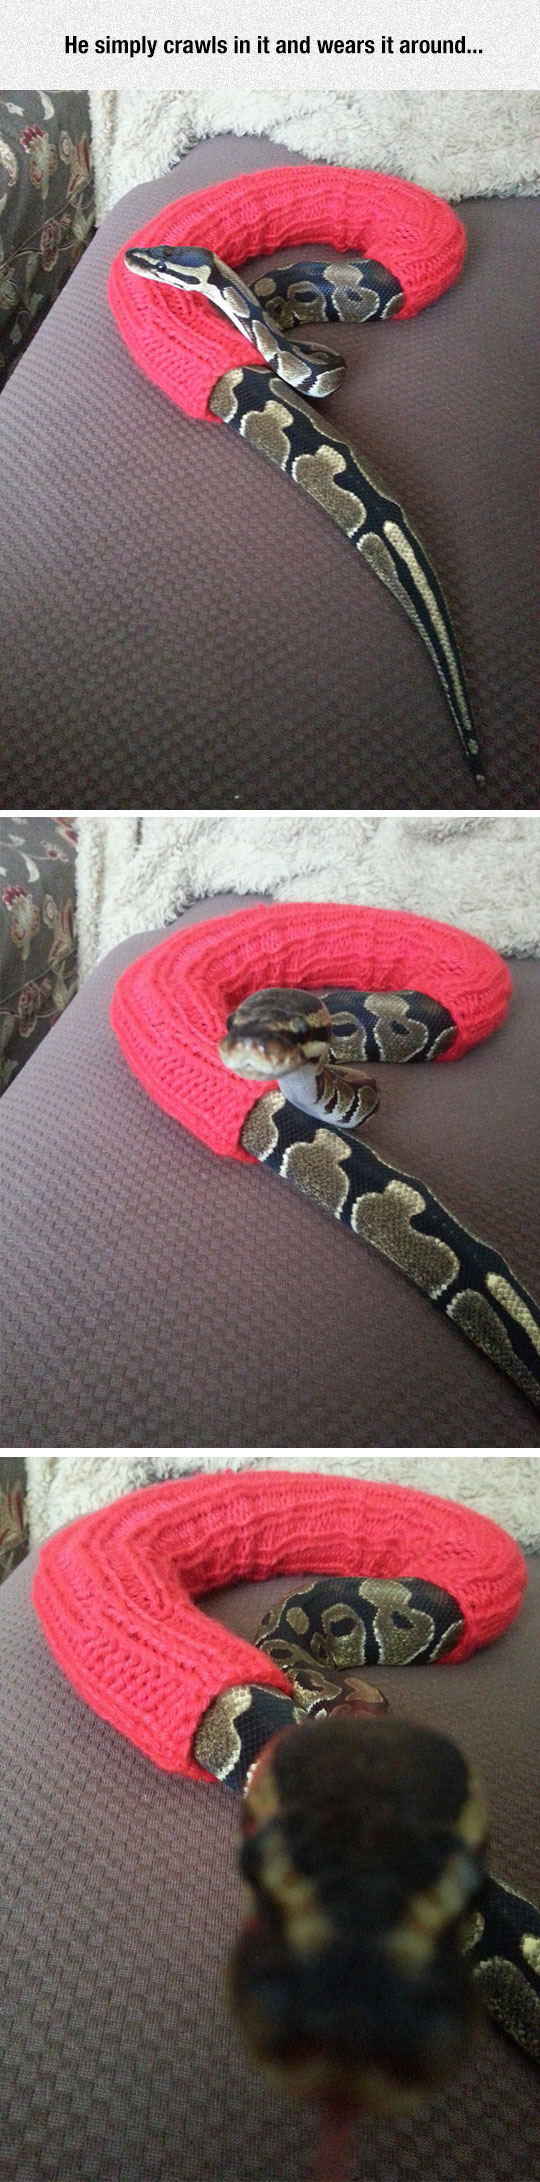 funny-snake-sweater-scary